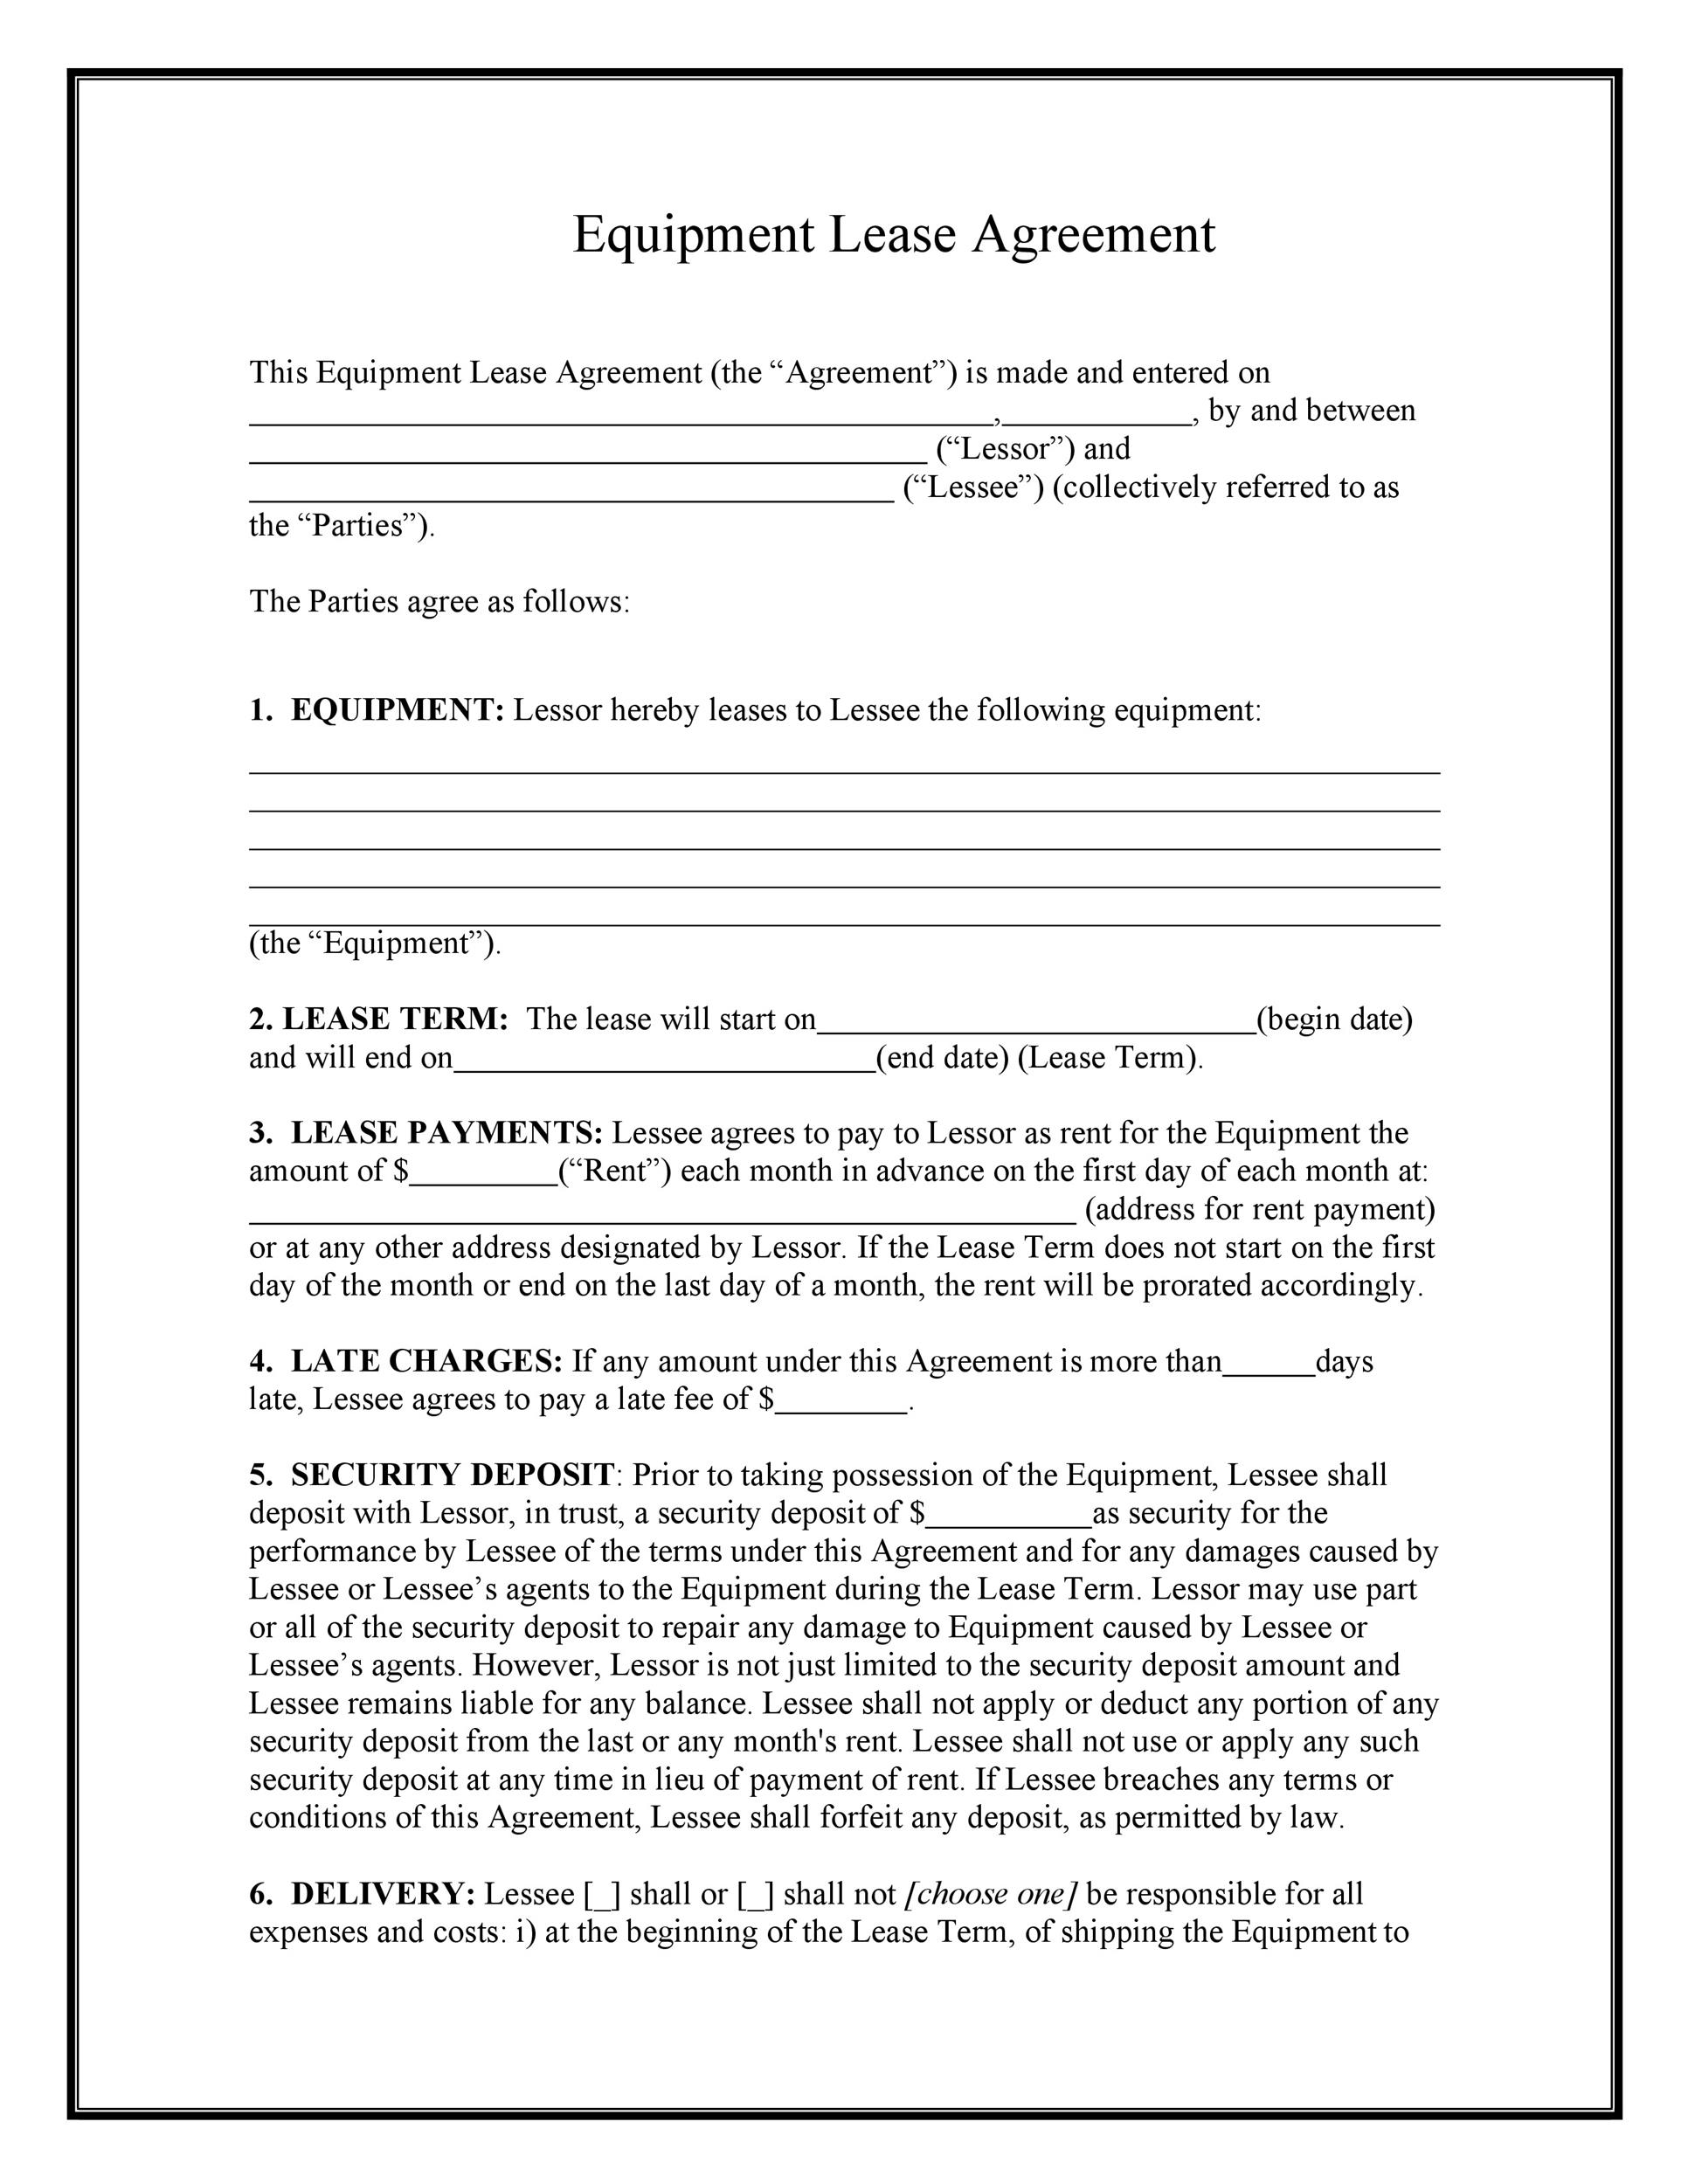 Free equipment lease agreement 01